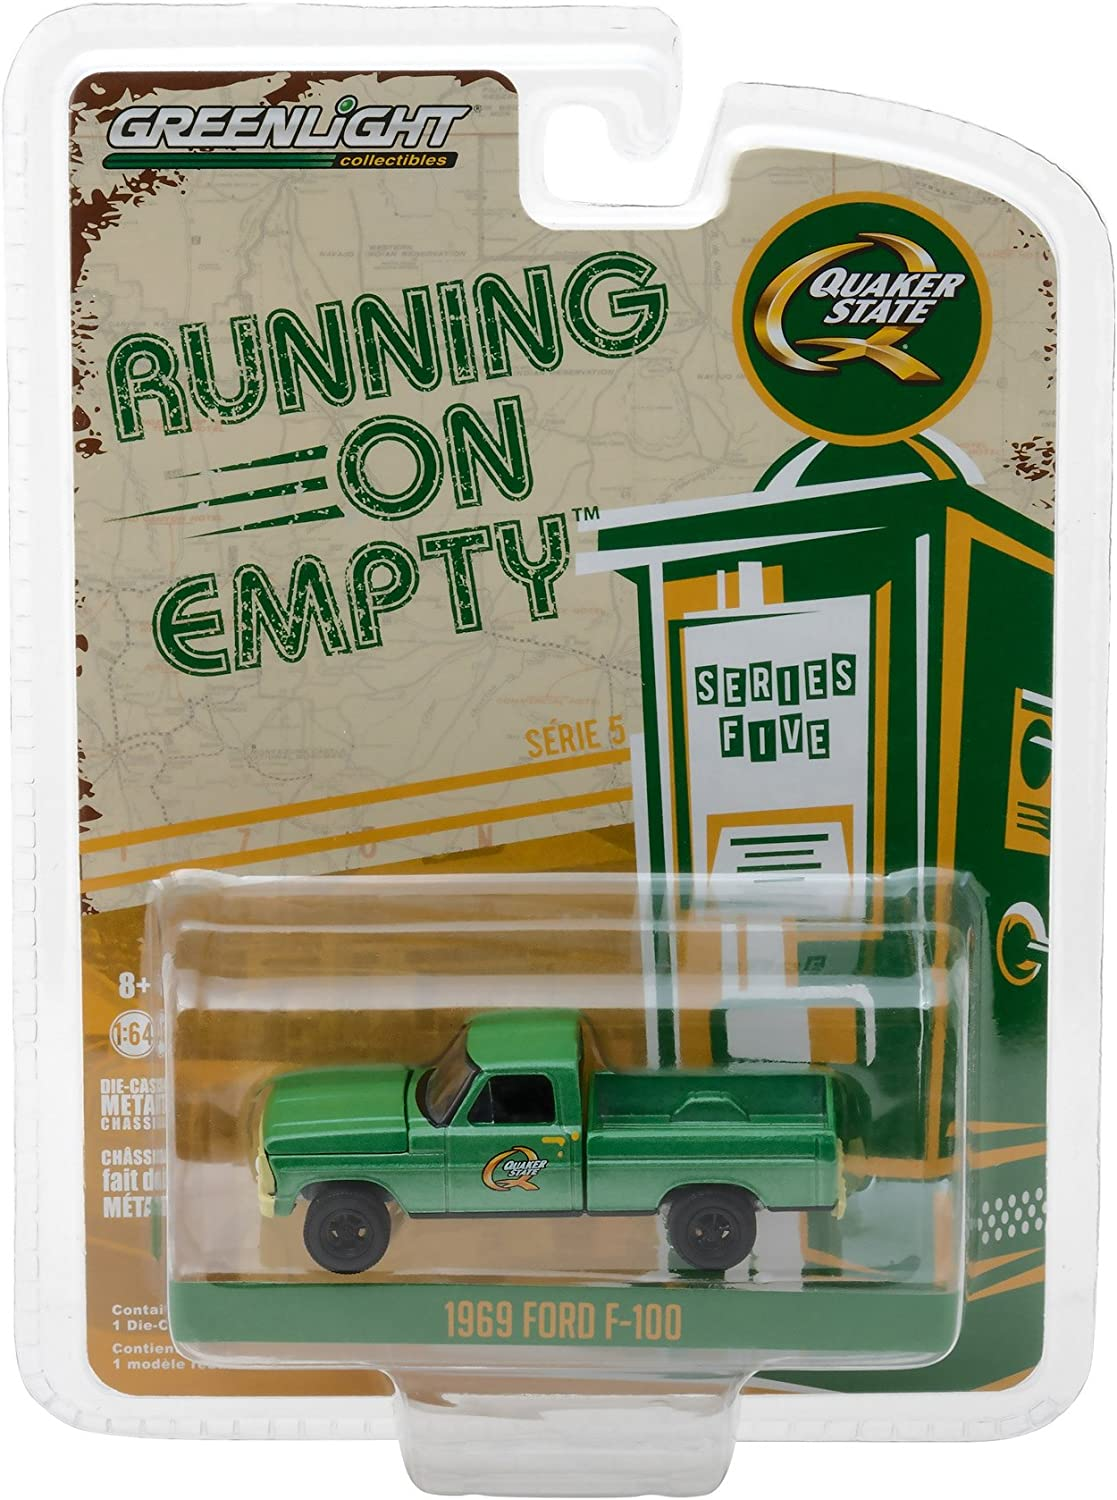 Trucks Series 16-1969 Ford F-350 Ramp Truck with Unrestored 1985 Ford 5610 Tractor 1:64 Scale Greenlight 33160-A H.D